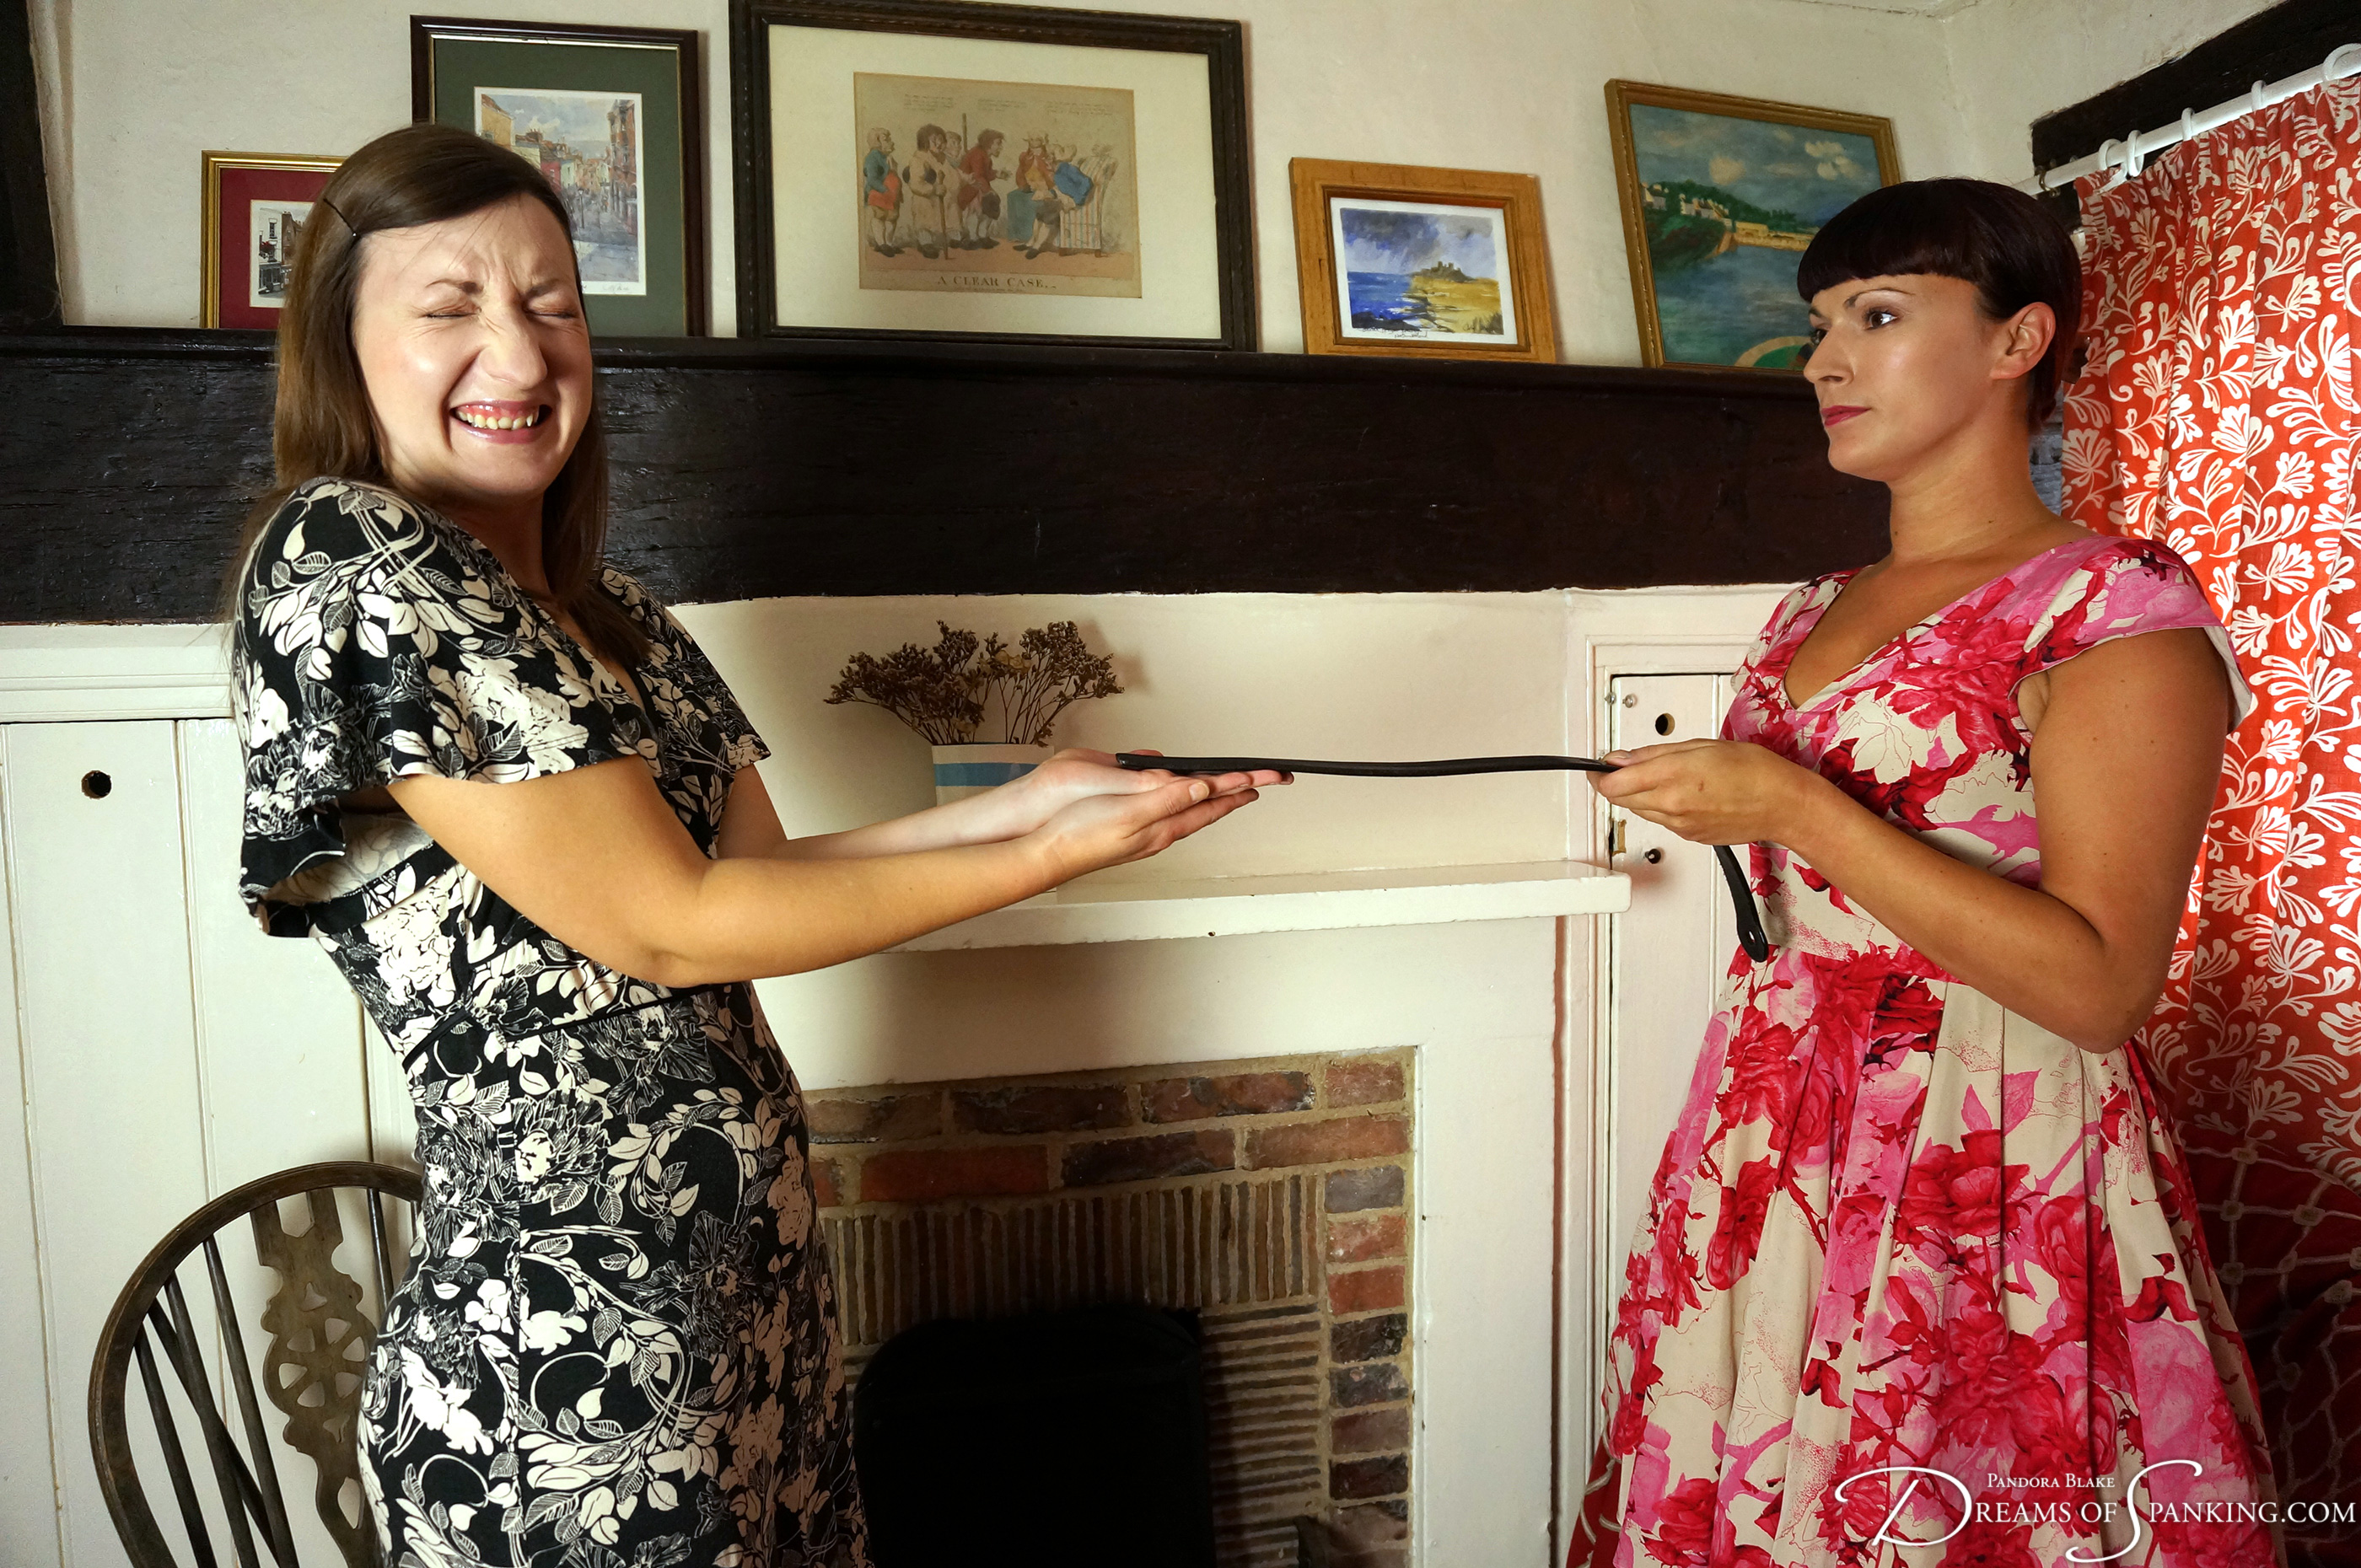 Pandora Blake holds out her hands for the tawse at Dreams of Spanking